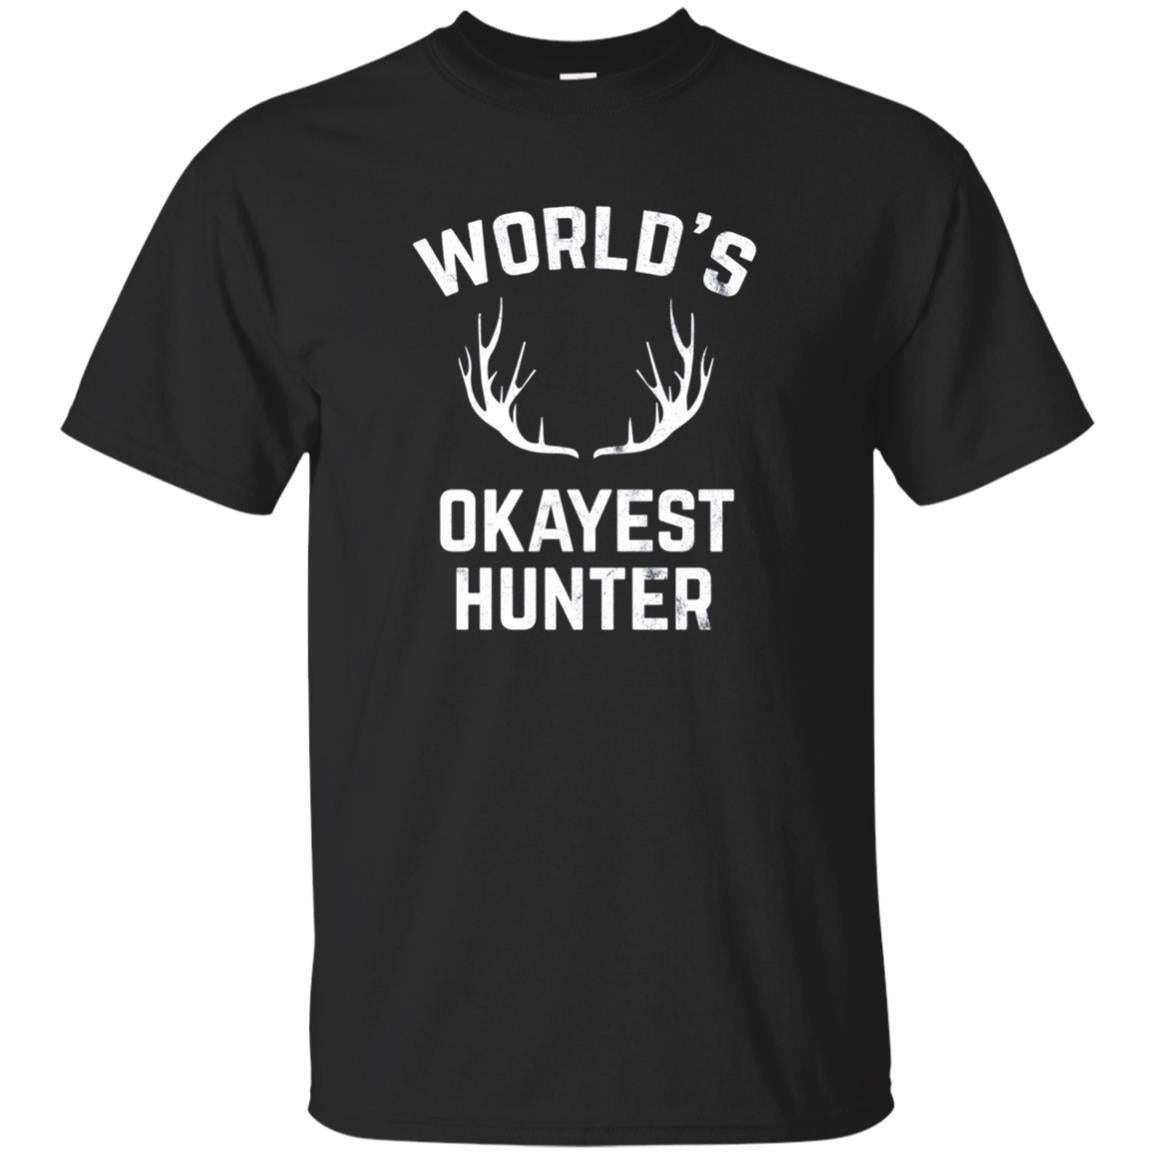 World's Okayest Hunter Funny Hunting Tshirt